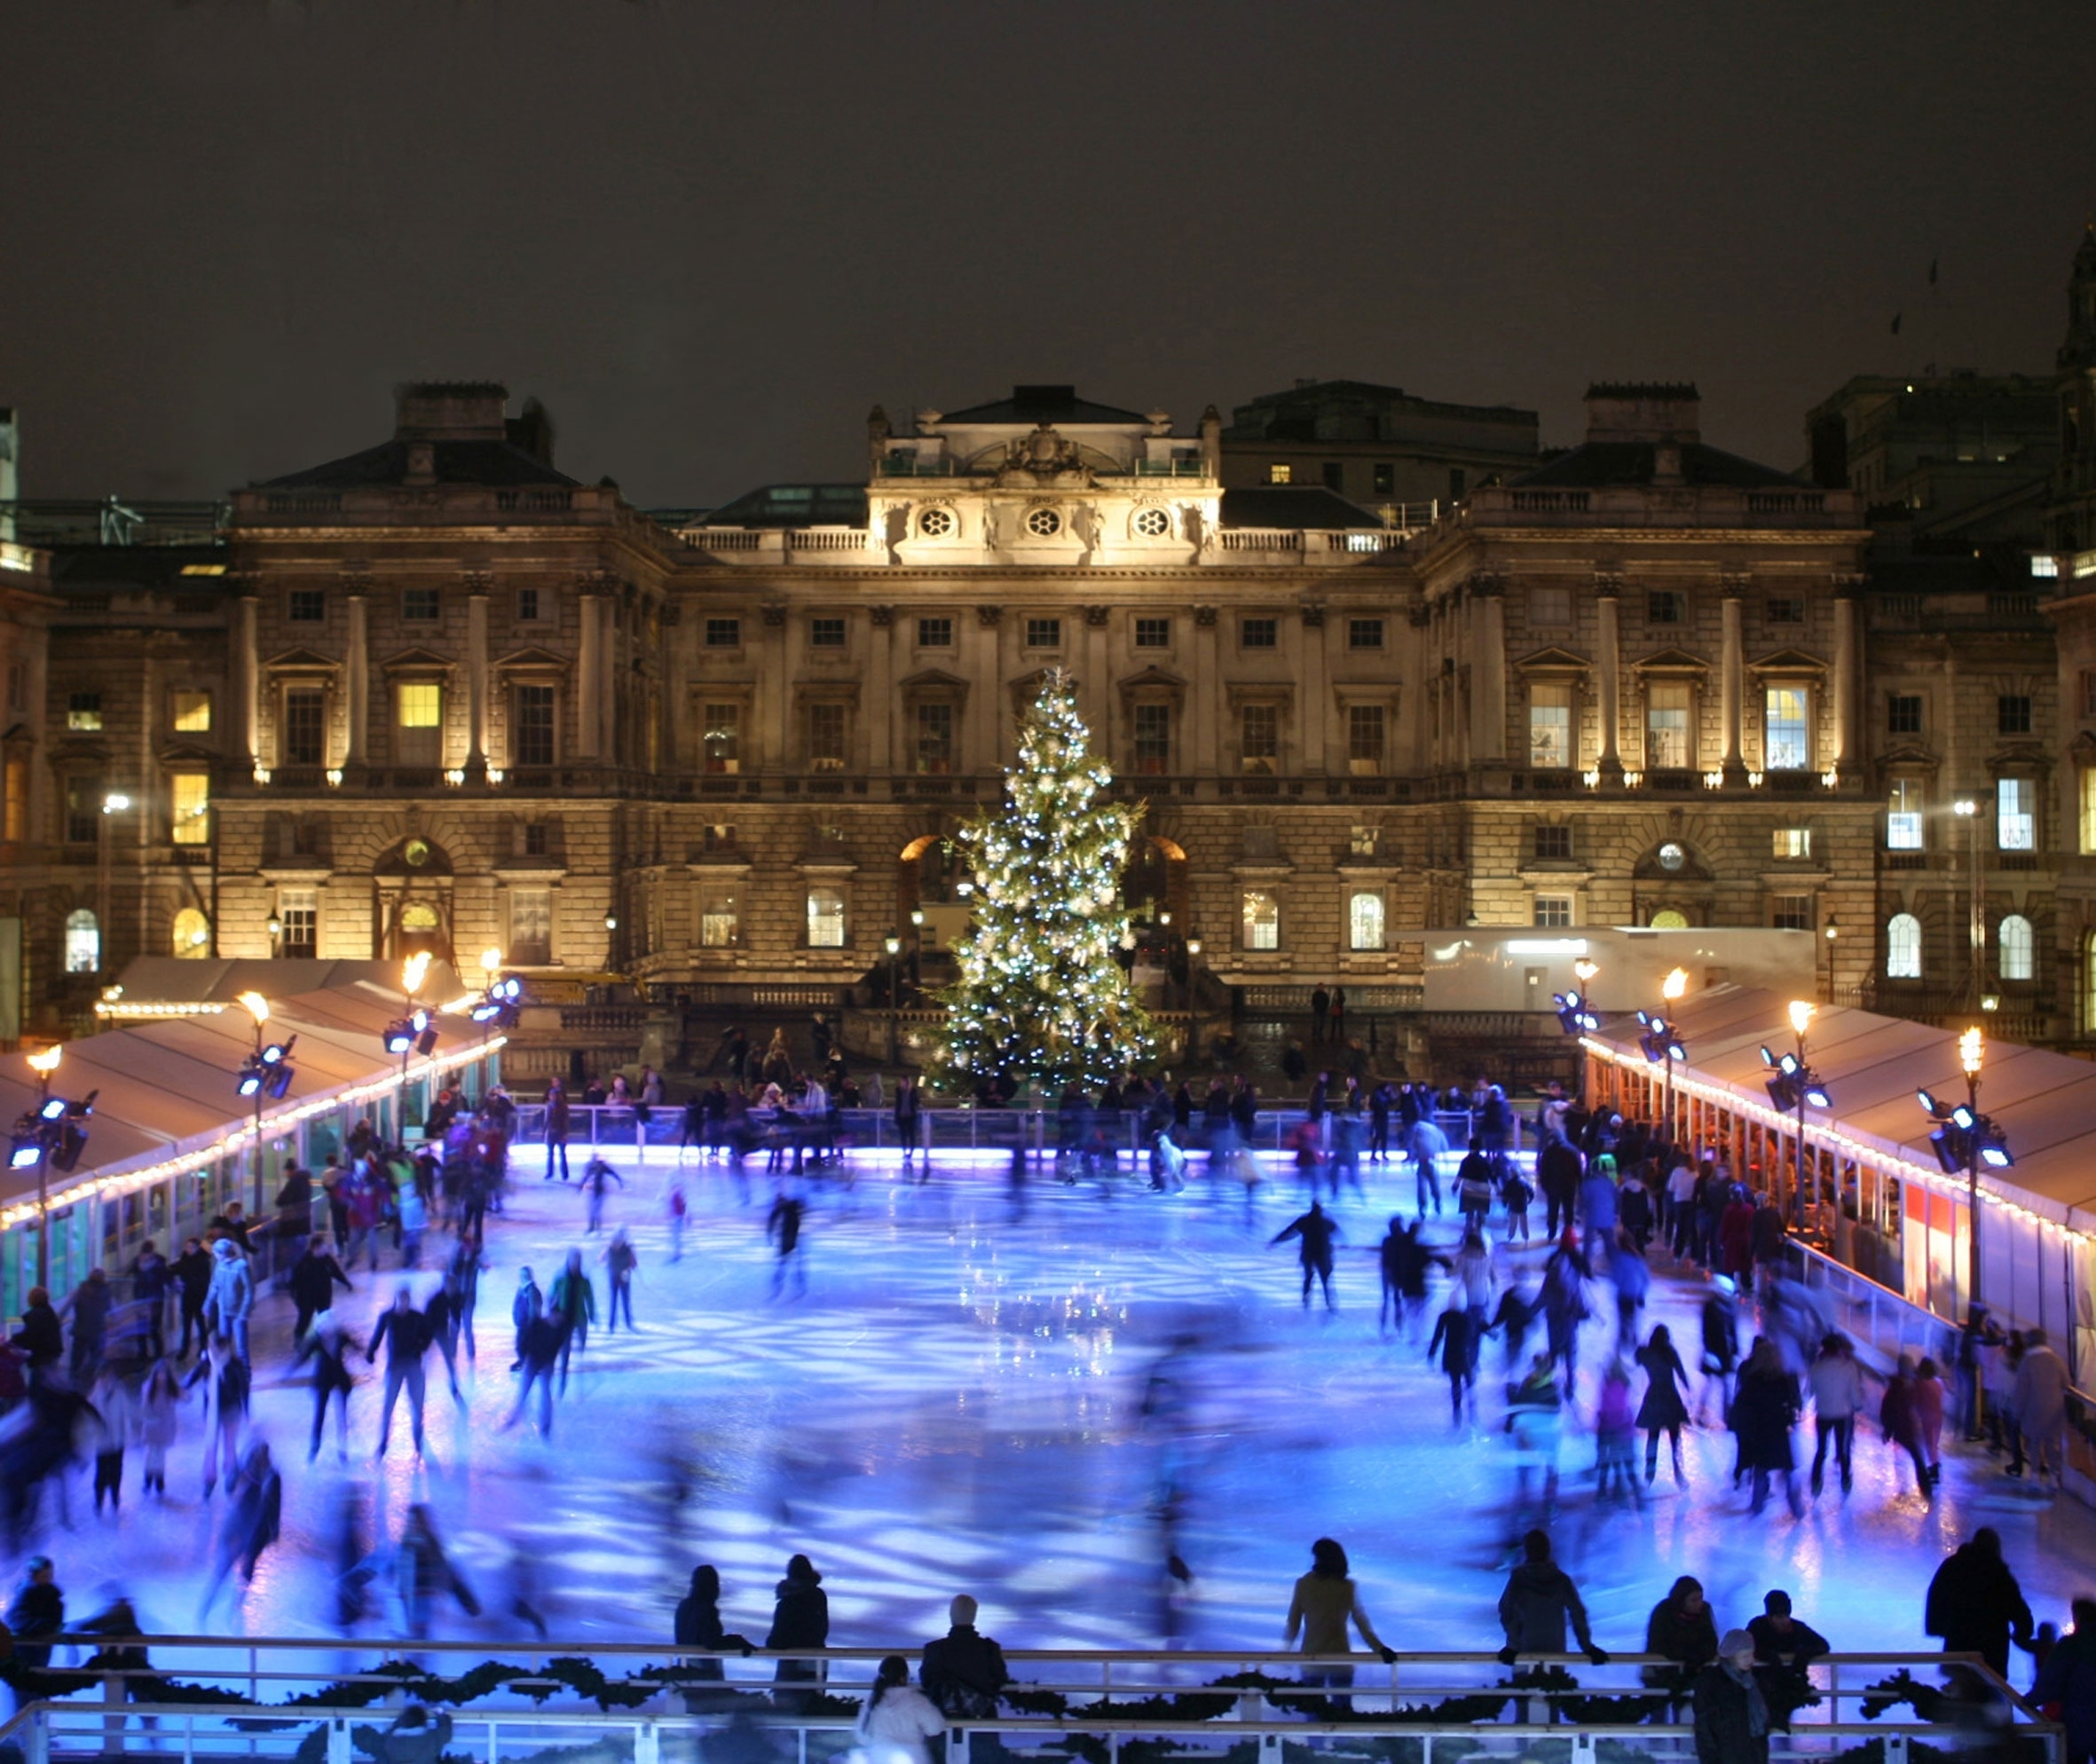 London At Christmas Time.Have A Fantastic Time In London At Christmas Sunny 3